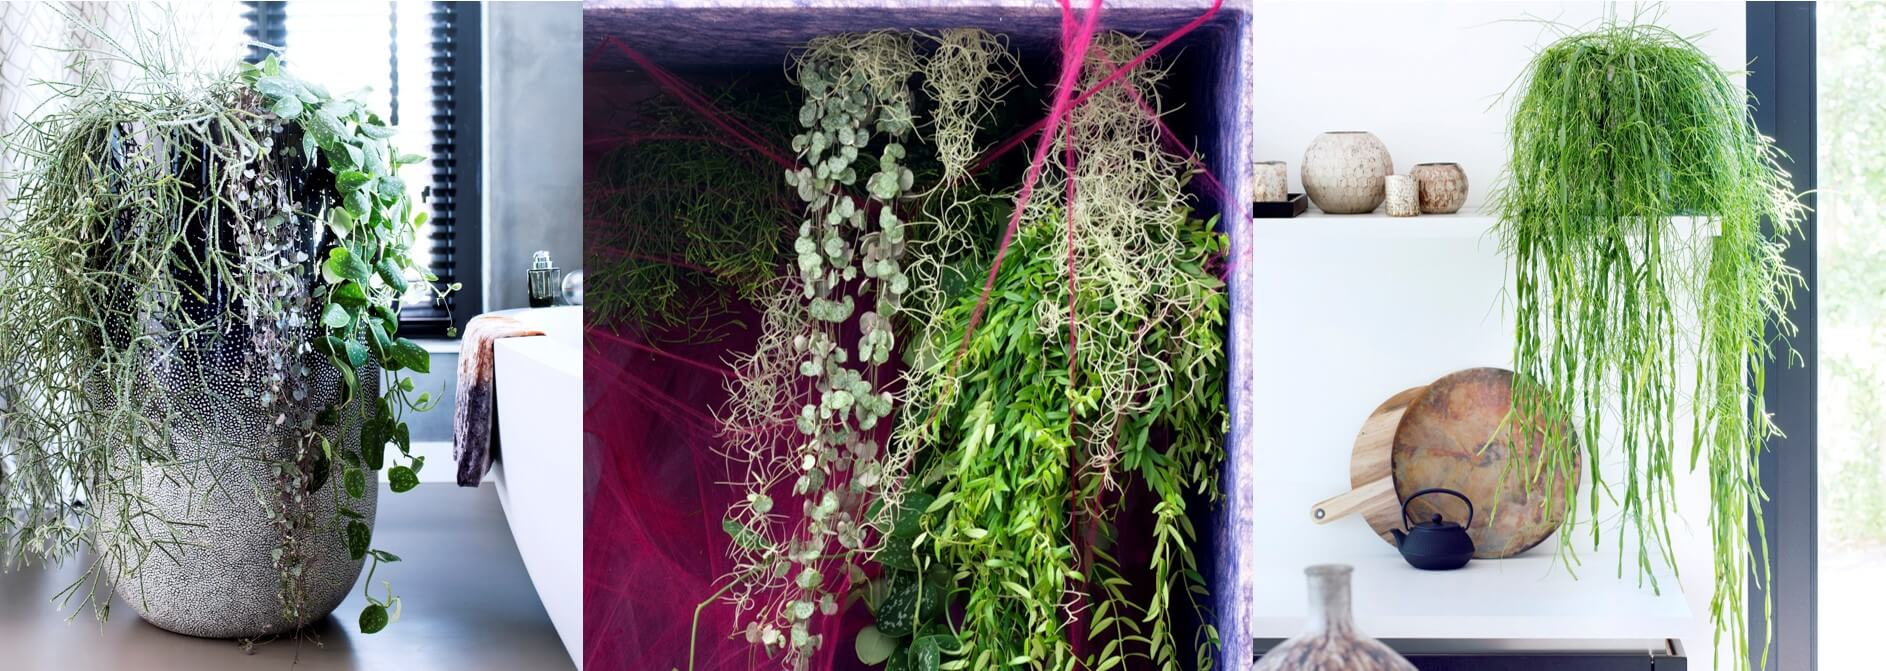 Houseplant of the month November: Rhipsalis